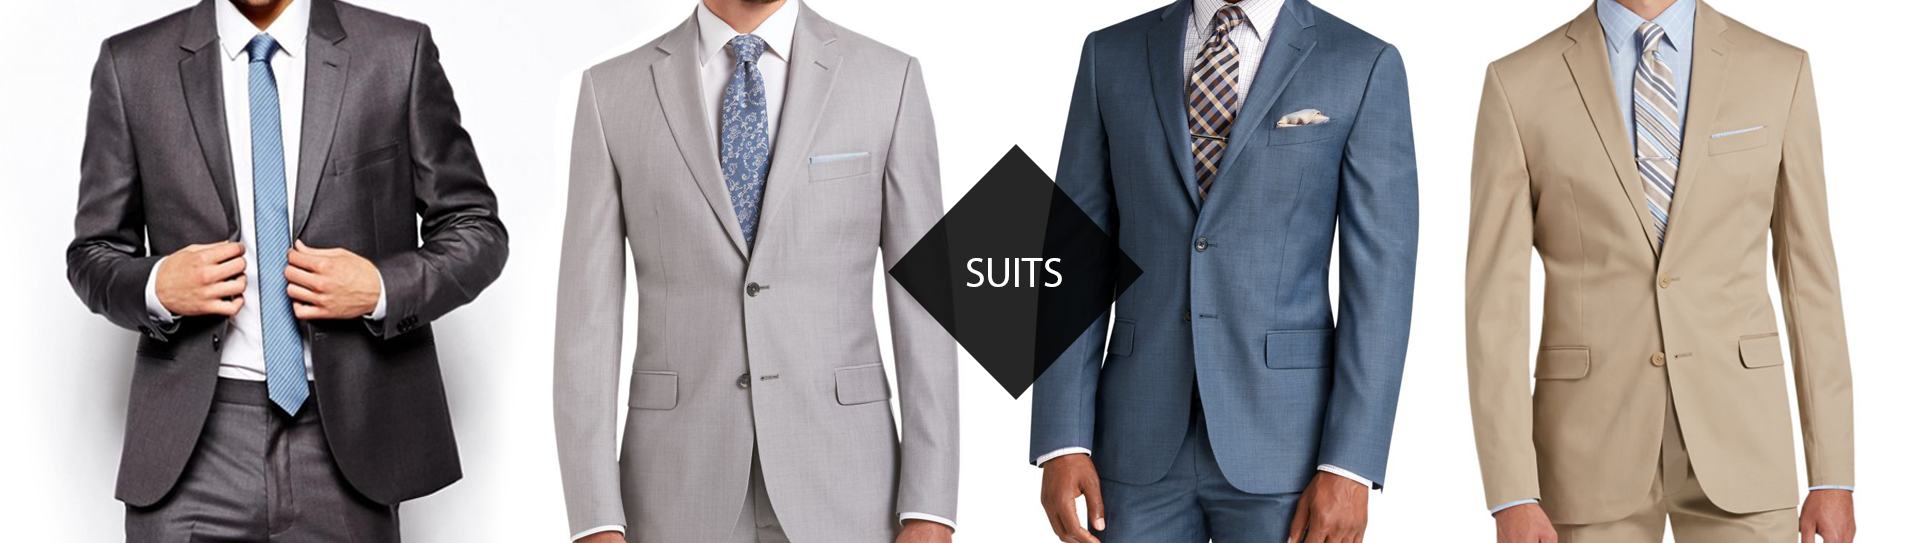 Phoenix Tuxedo Rental - Mr. Formal Tuxedo and Suit Rentals & Sales